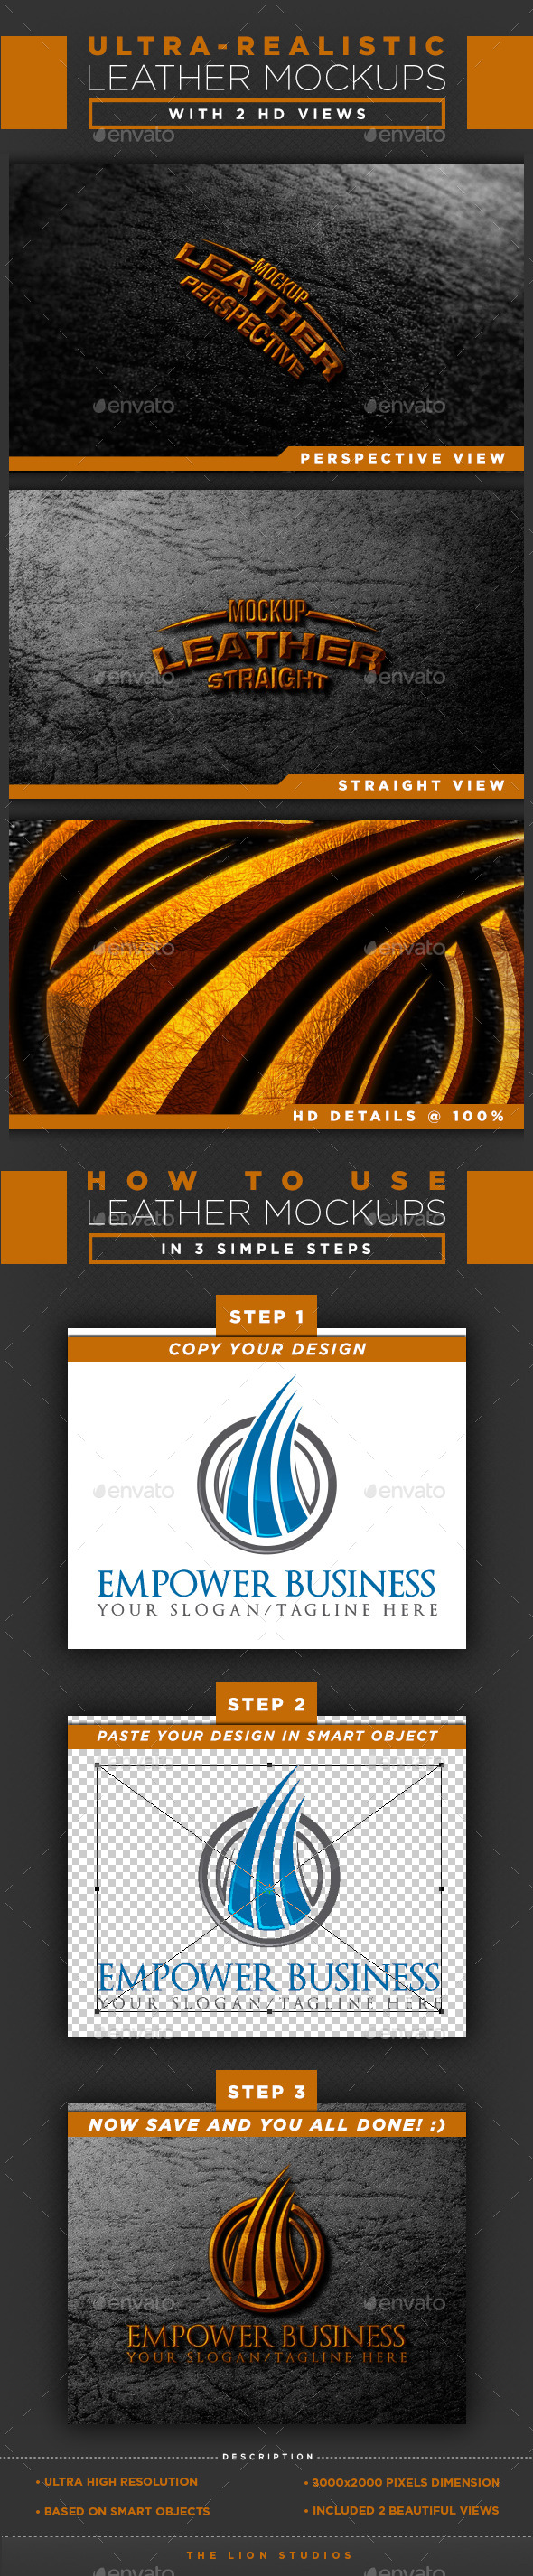 GraphicRiver HD Leather Mockups 10191291